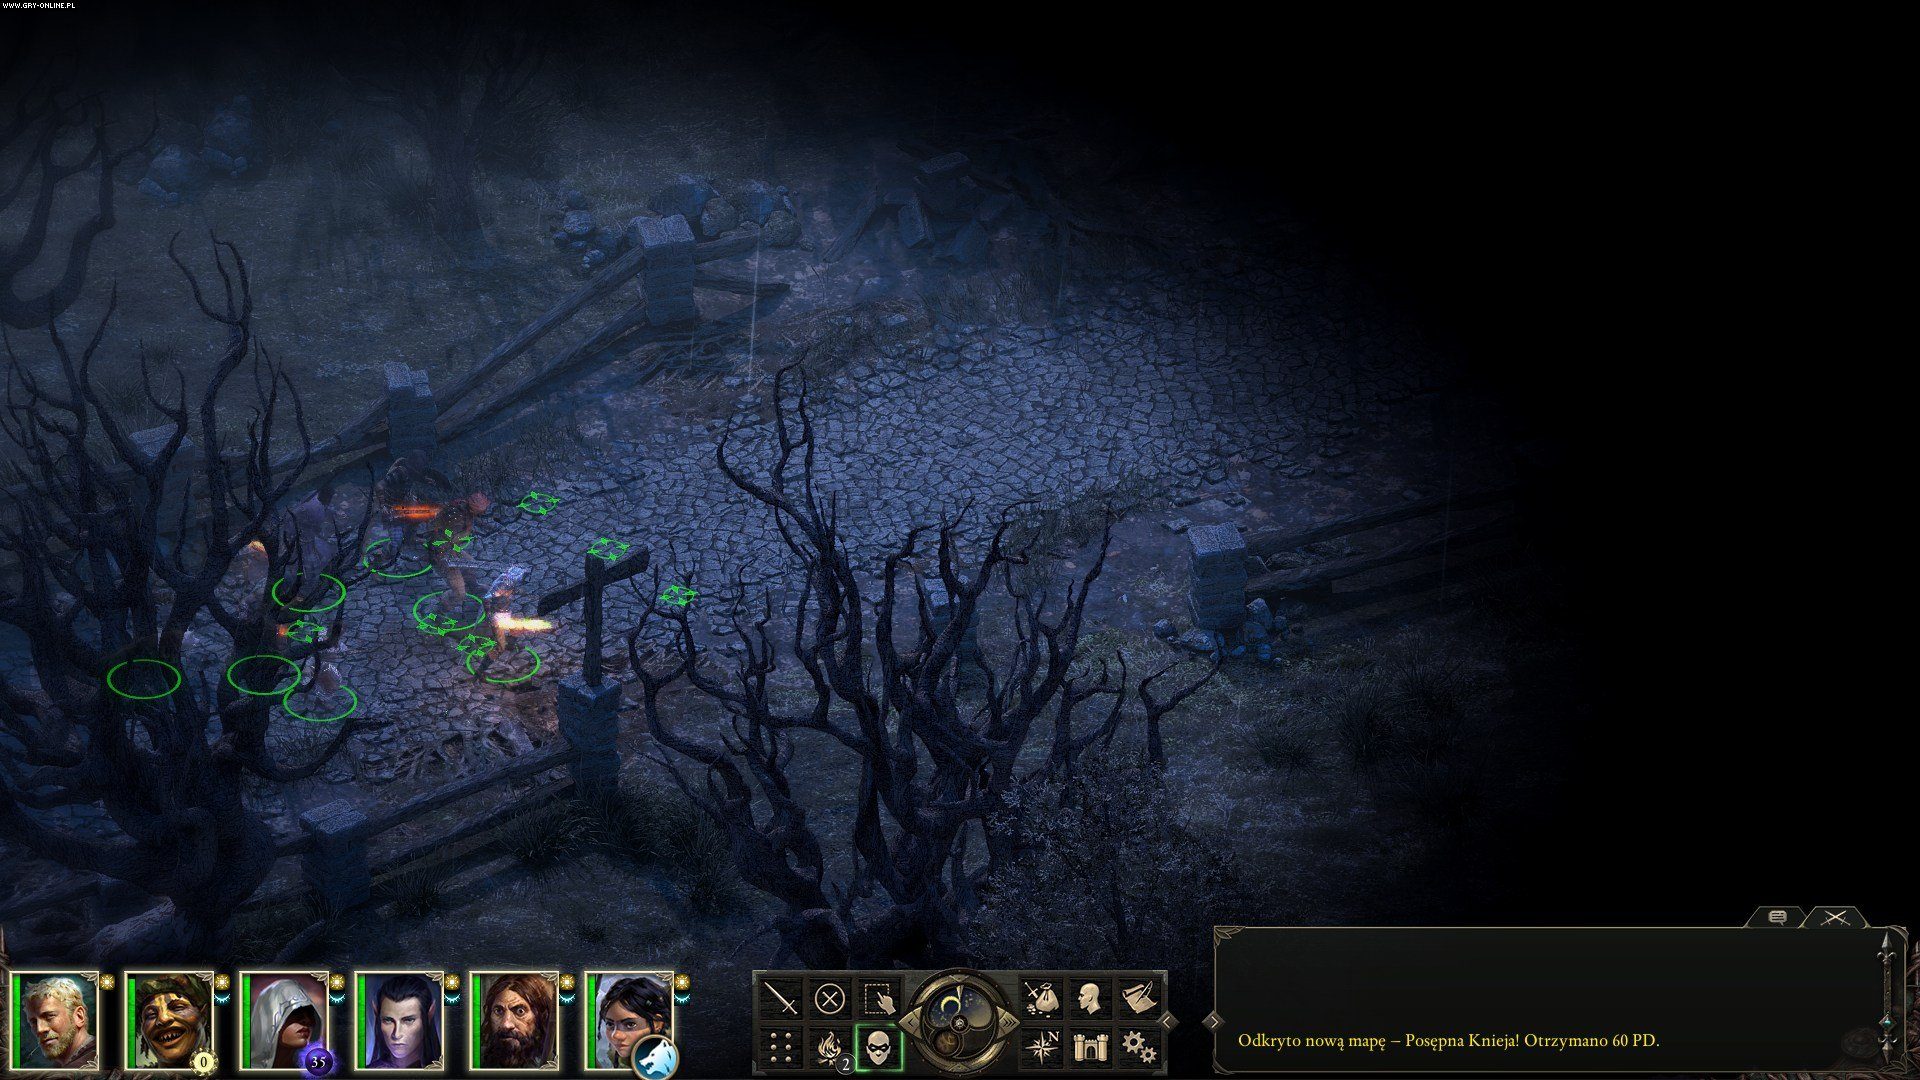 Pillars of Eternity PC Games Image 11/93, Obsidian Entertainment, Paradox Interactive